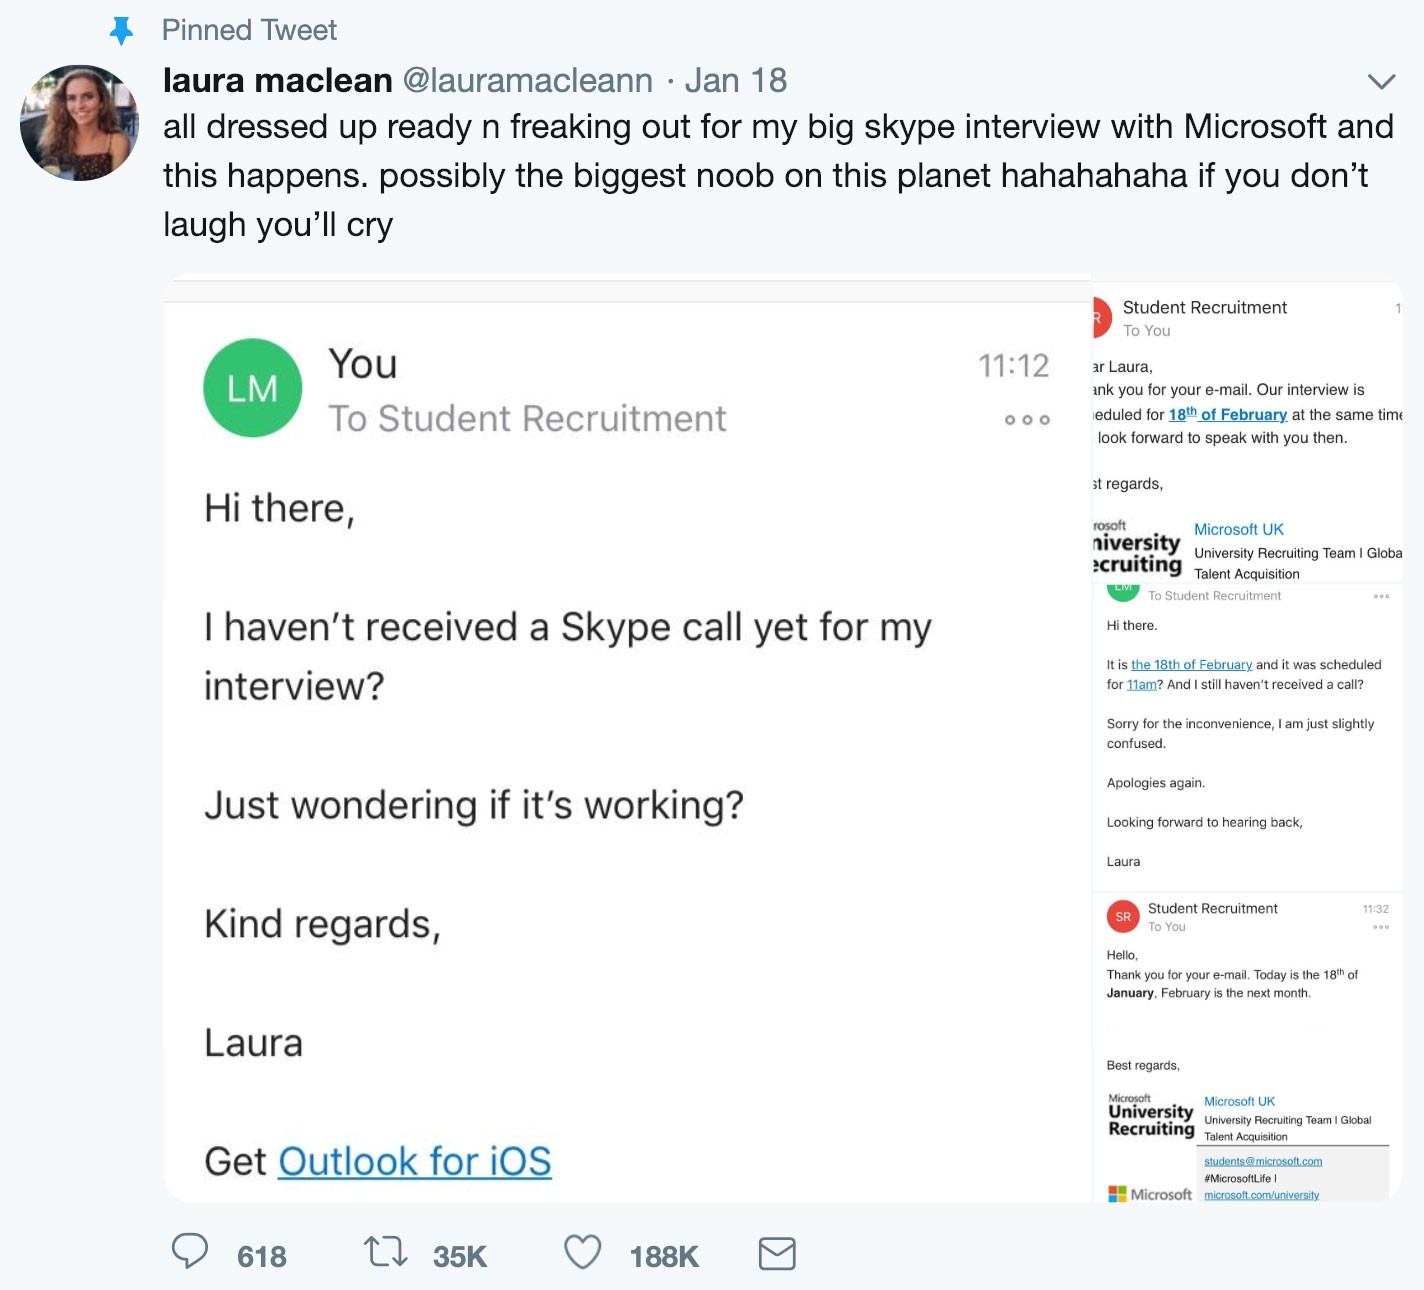 Screenshot of Laura MacLean's tweet about her mixing up the dates for her interview with Microsoft (including screenshot images of her email exchange with recruiter):  All dressed up ready n freaking out for my big Skype interview with Microsoft and this happens. Possibly the biggest noob on this planet. Hahahahaha. If you don't laugh you'll cry